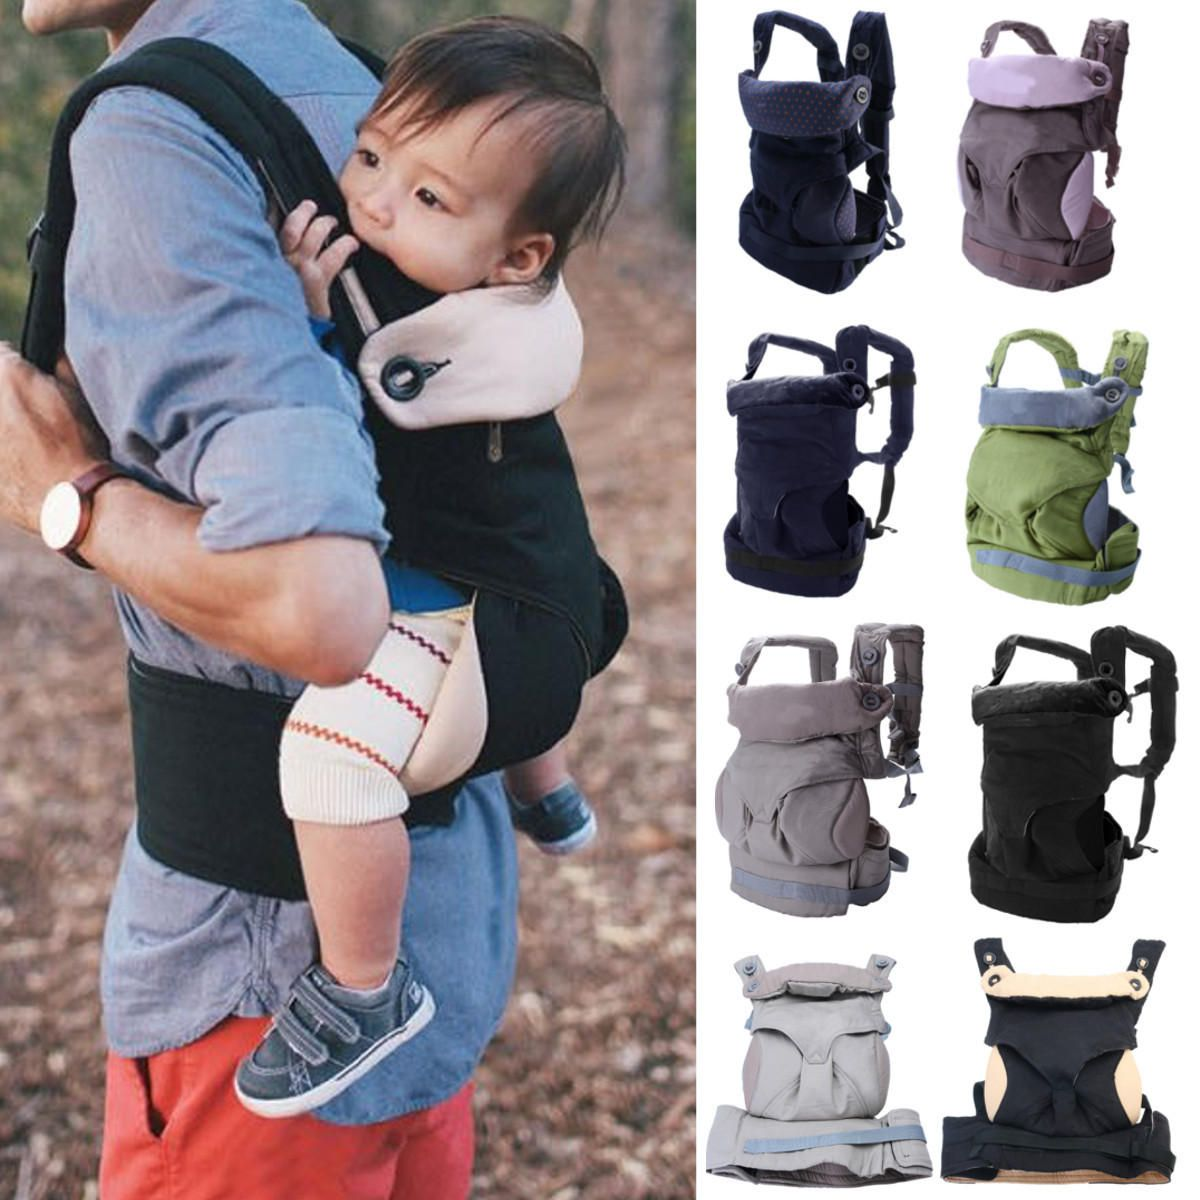 Baby Kids Safety Harness Cotton Walking Rein Carrier Breathable Babys Strap Baby Carriers